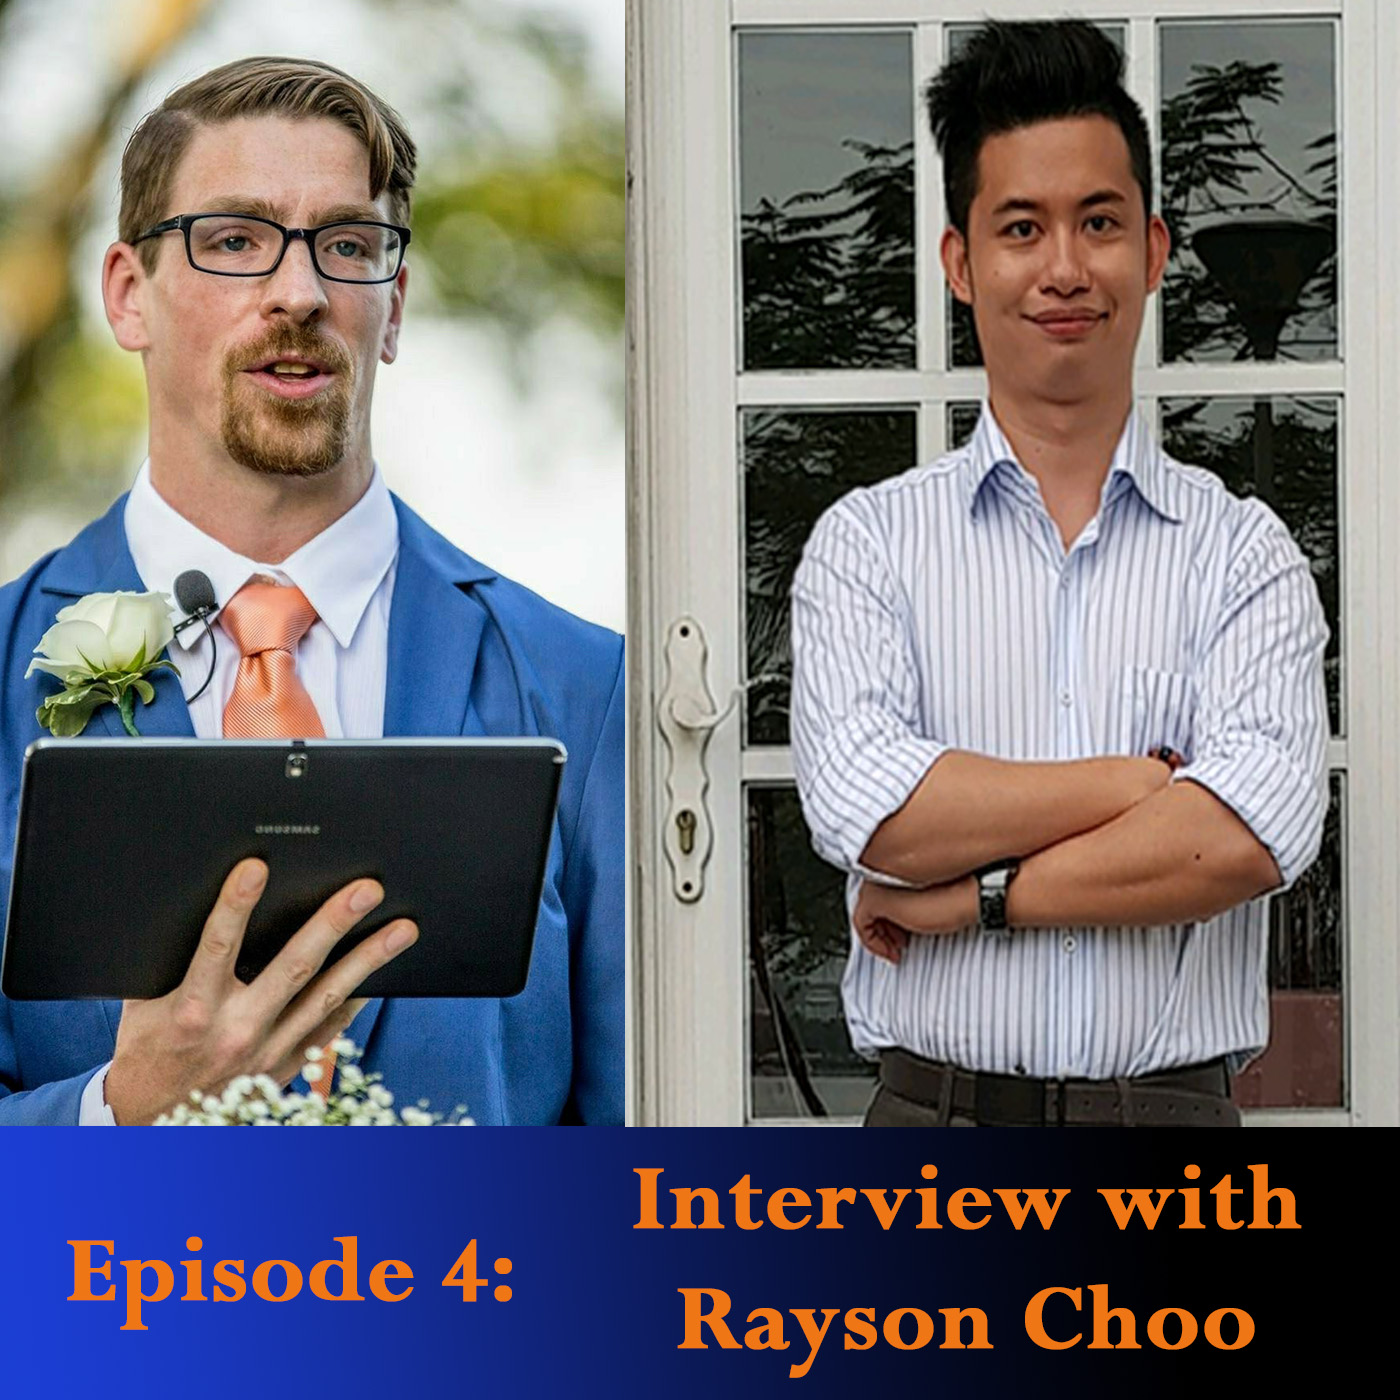 Episode 4: Interview with Rayson Choo